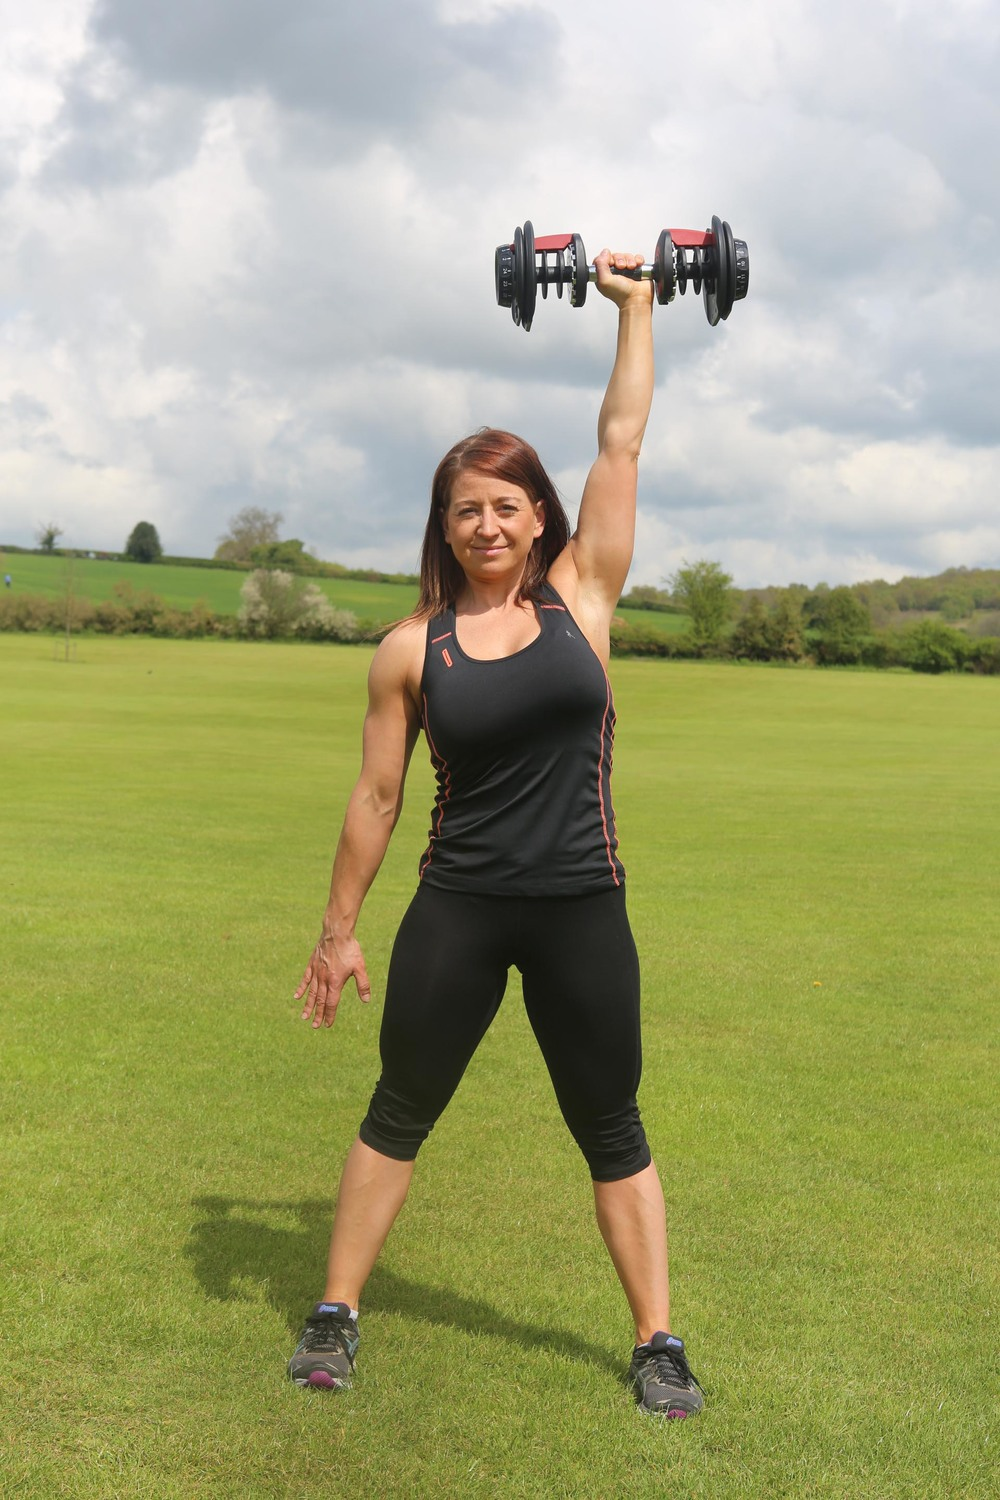 Kettlebell press to strengthen the shoulders and shape the arms